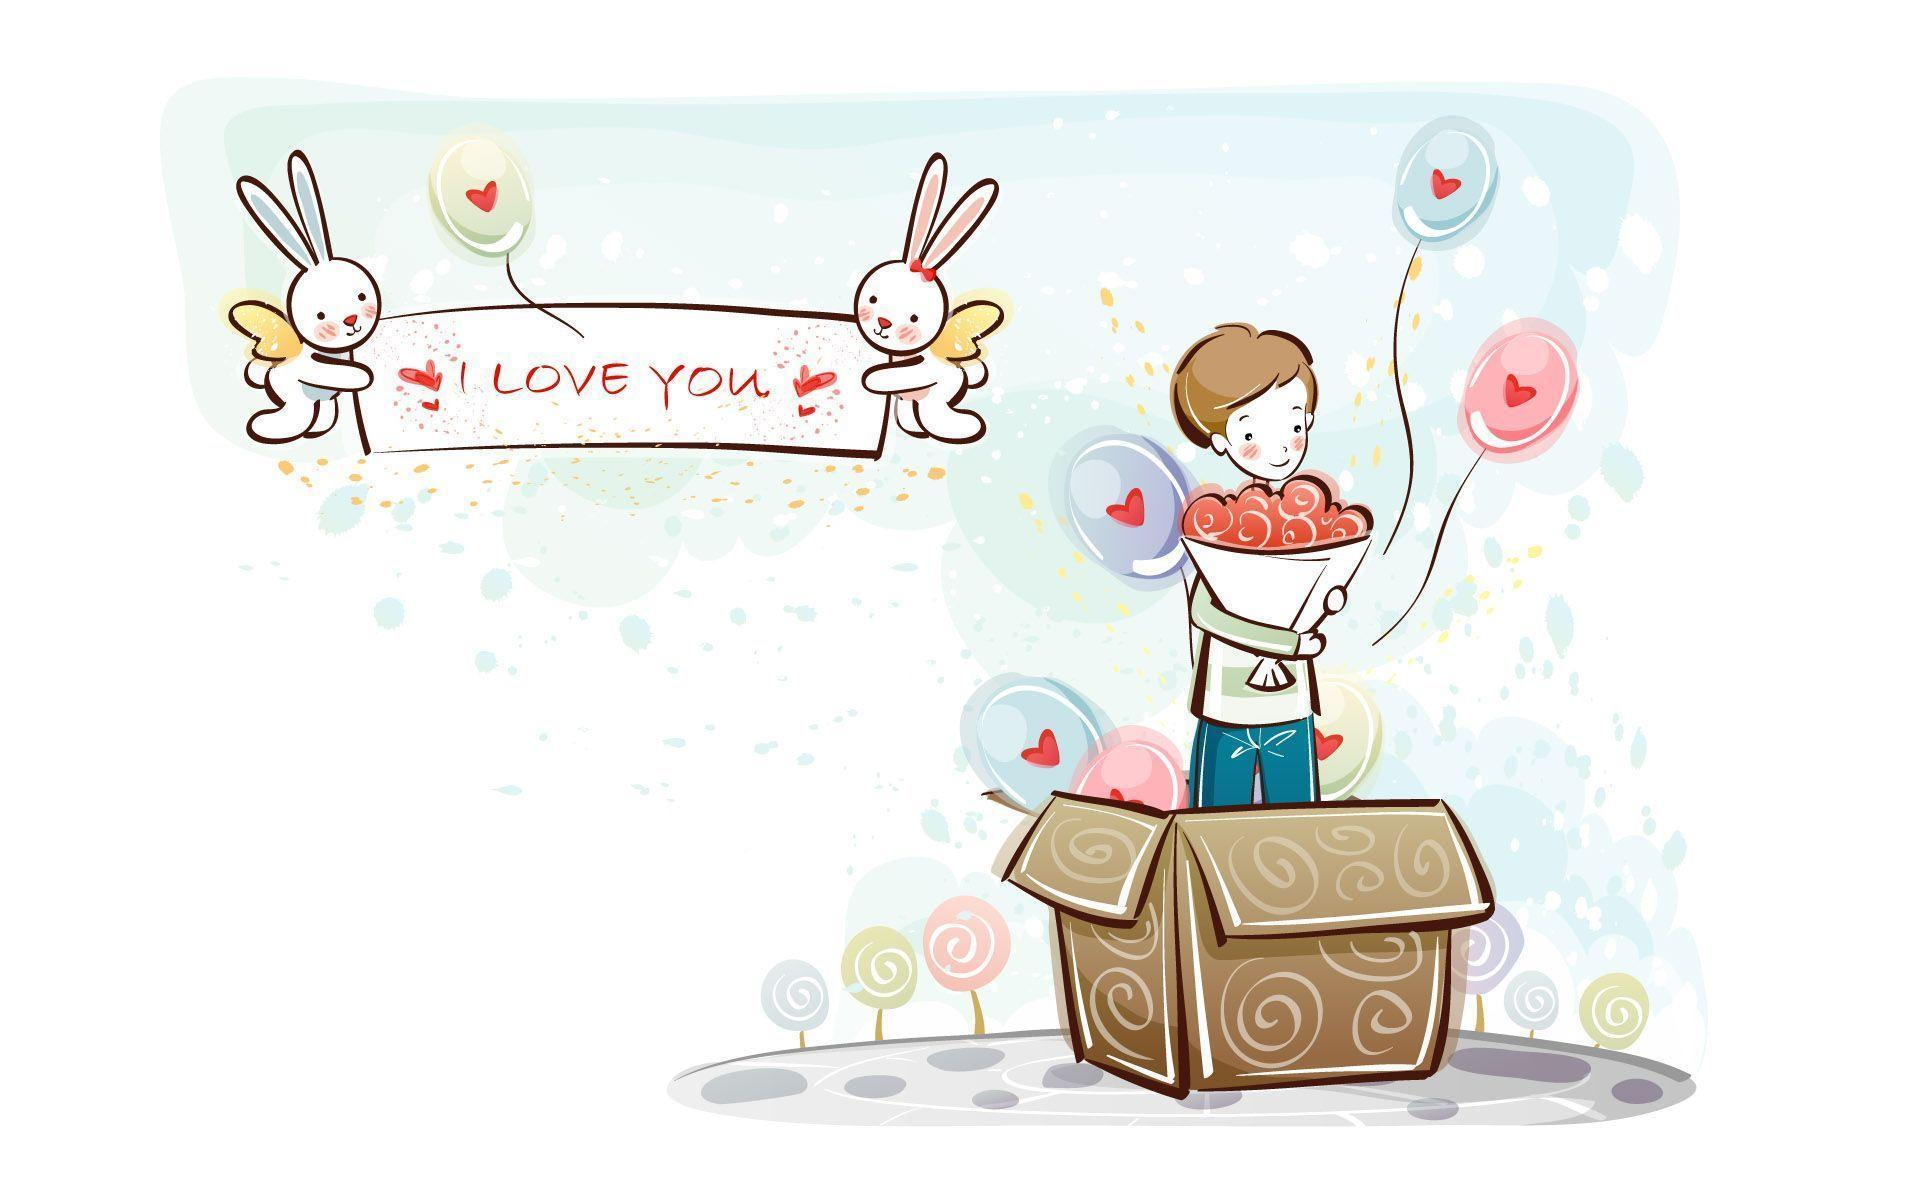 Love couple Wallpaper Hd cartoon : Image Gallery love couple cartoon wallpaper